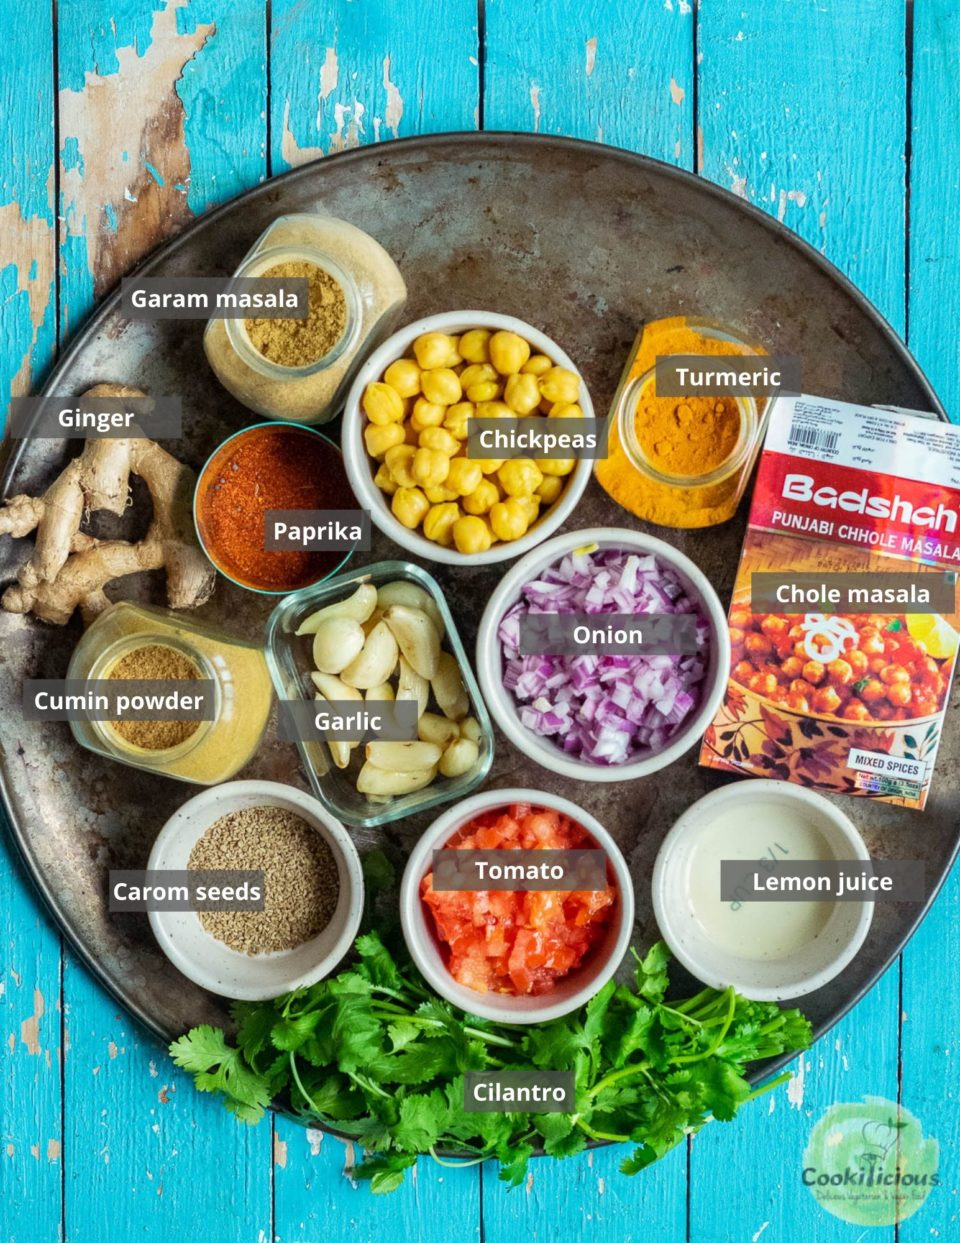 all the ingredients needed to make Tawa Chole | Chickpea Stir Fry arranged on a tray